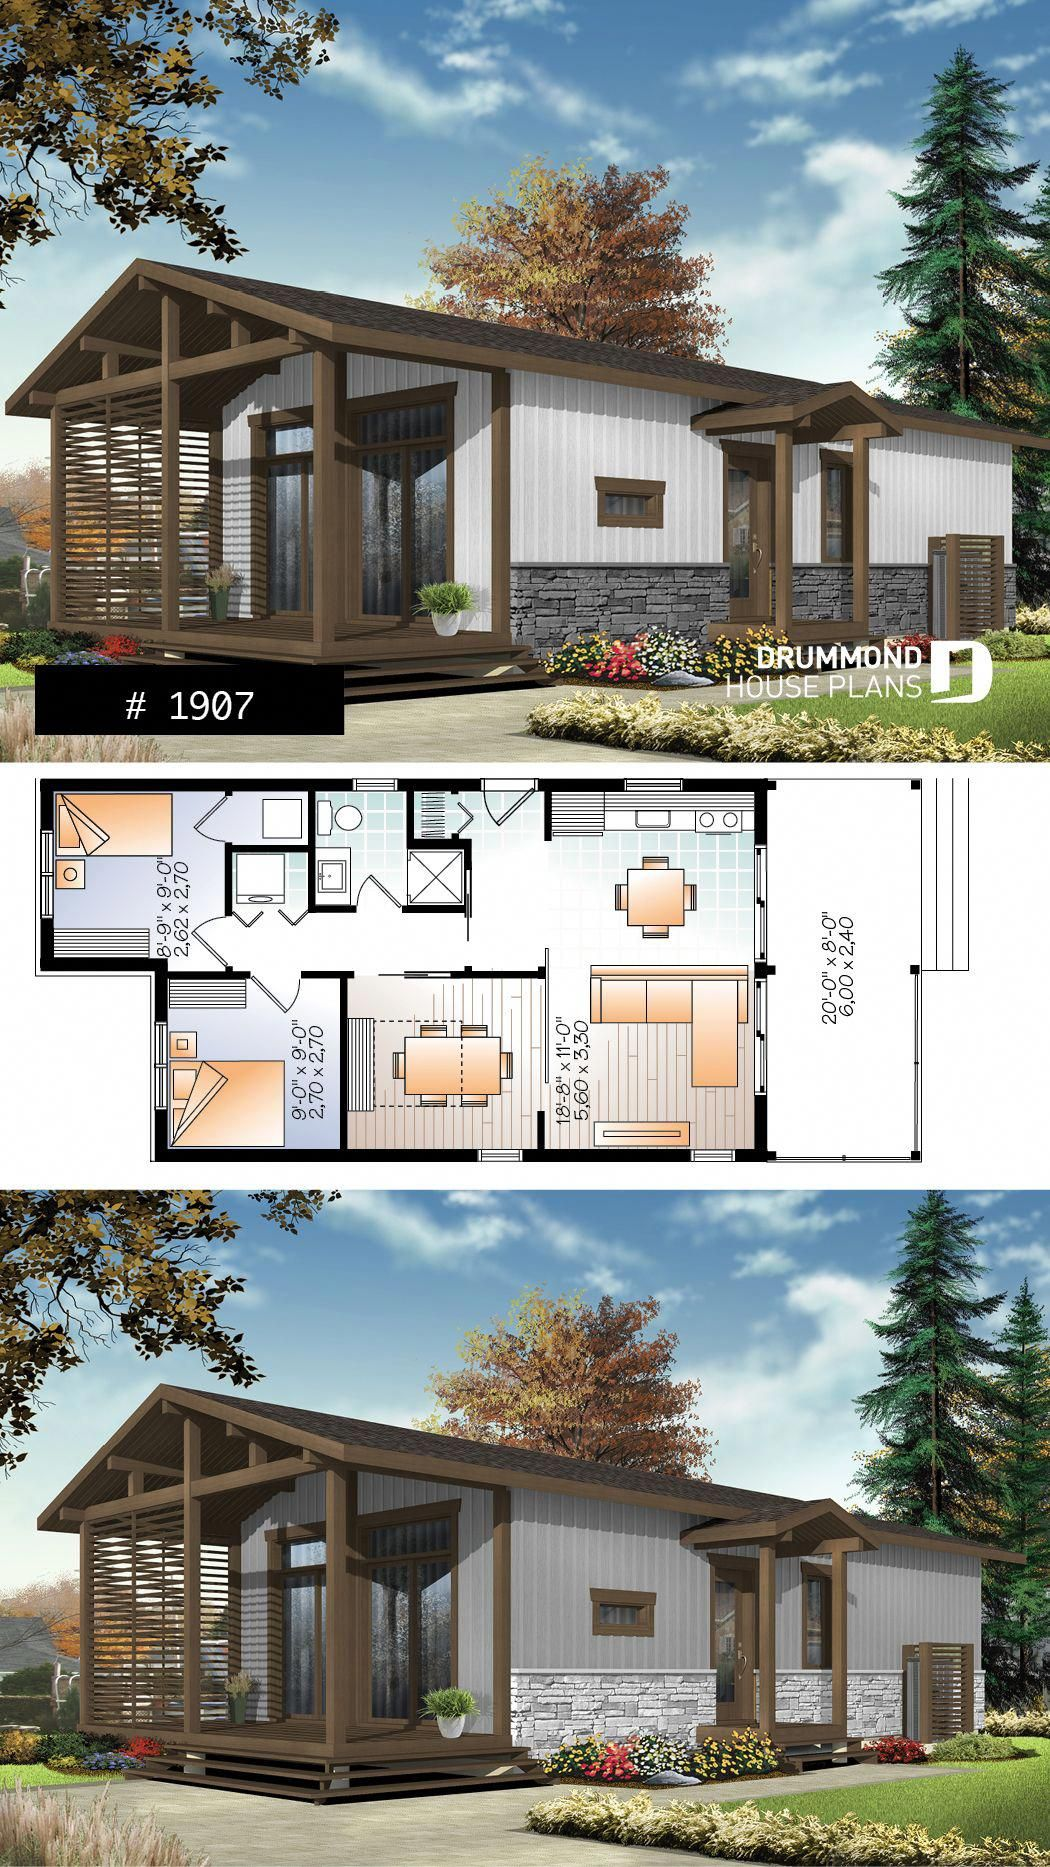 Modern Rustic 700 Sq Ft Tiny Small House Plan Very Versatile 3 Bedrooms Large Covered Deck Rusticarchite Cottage House Plans Small House Sims House Plans